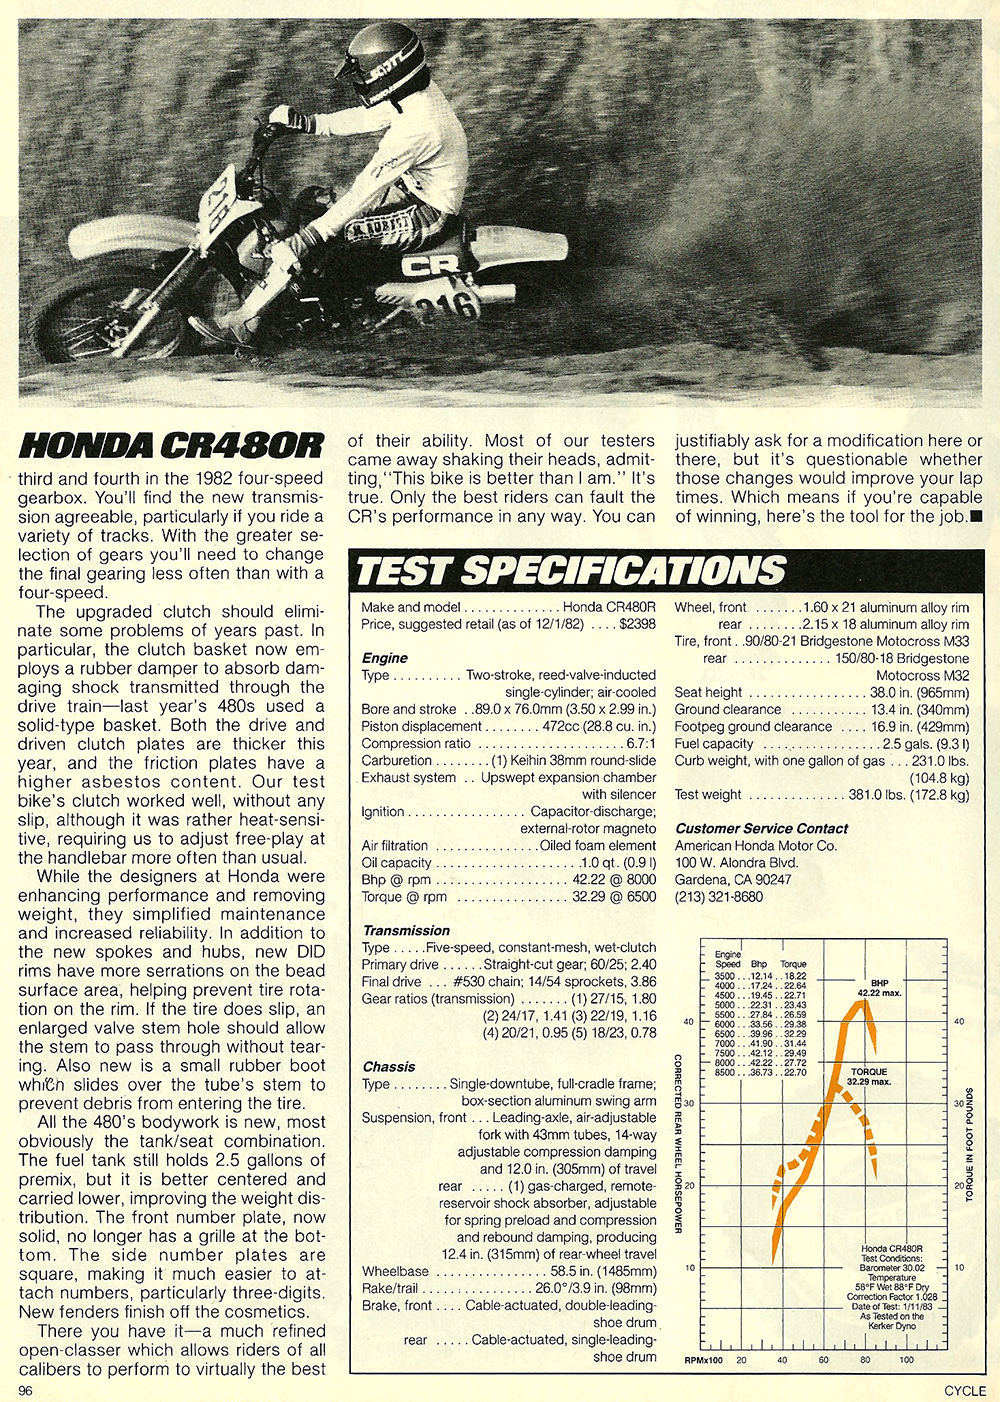 1983 Honda CR480R road test 7.jpg